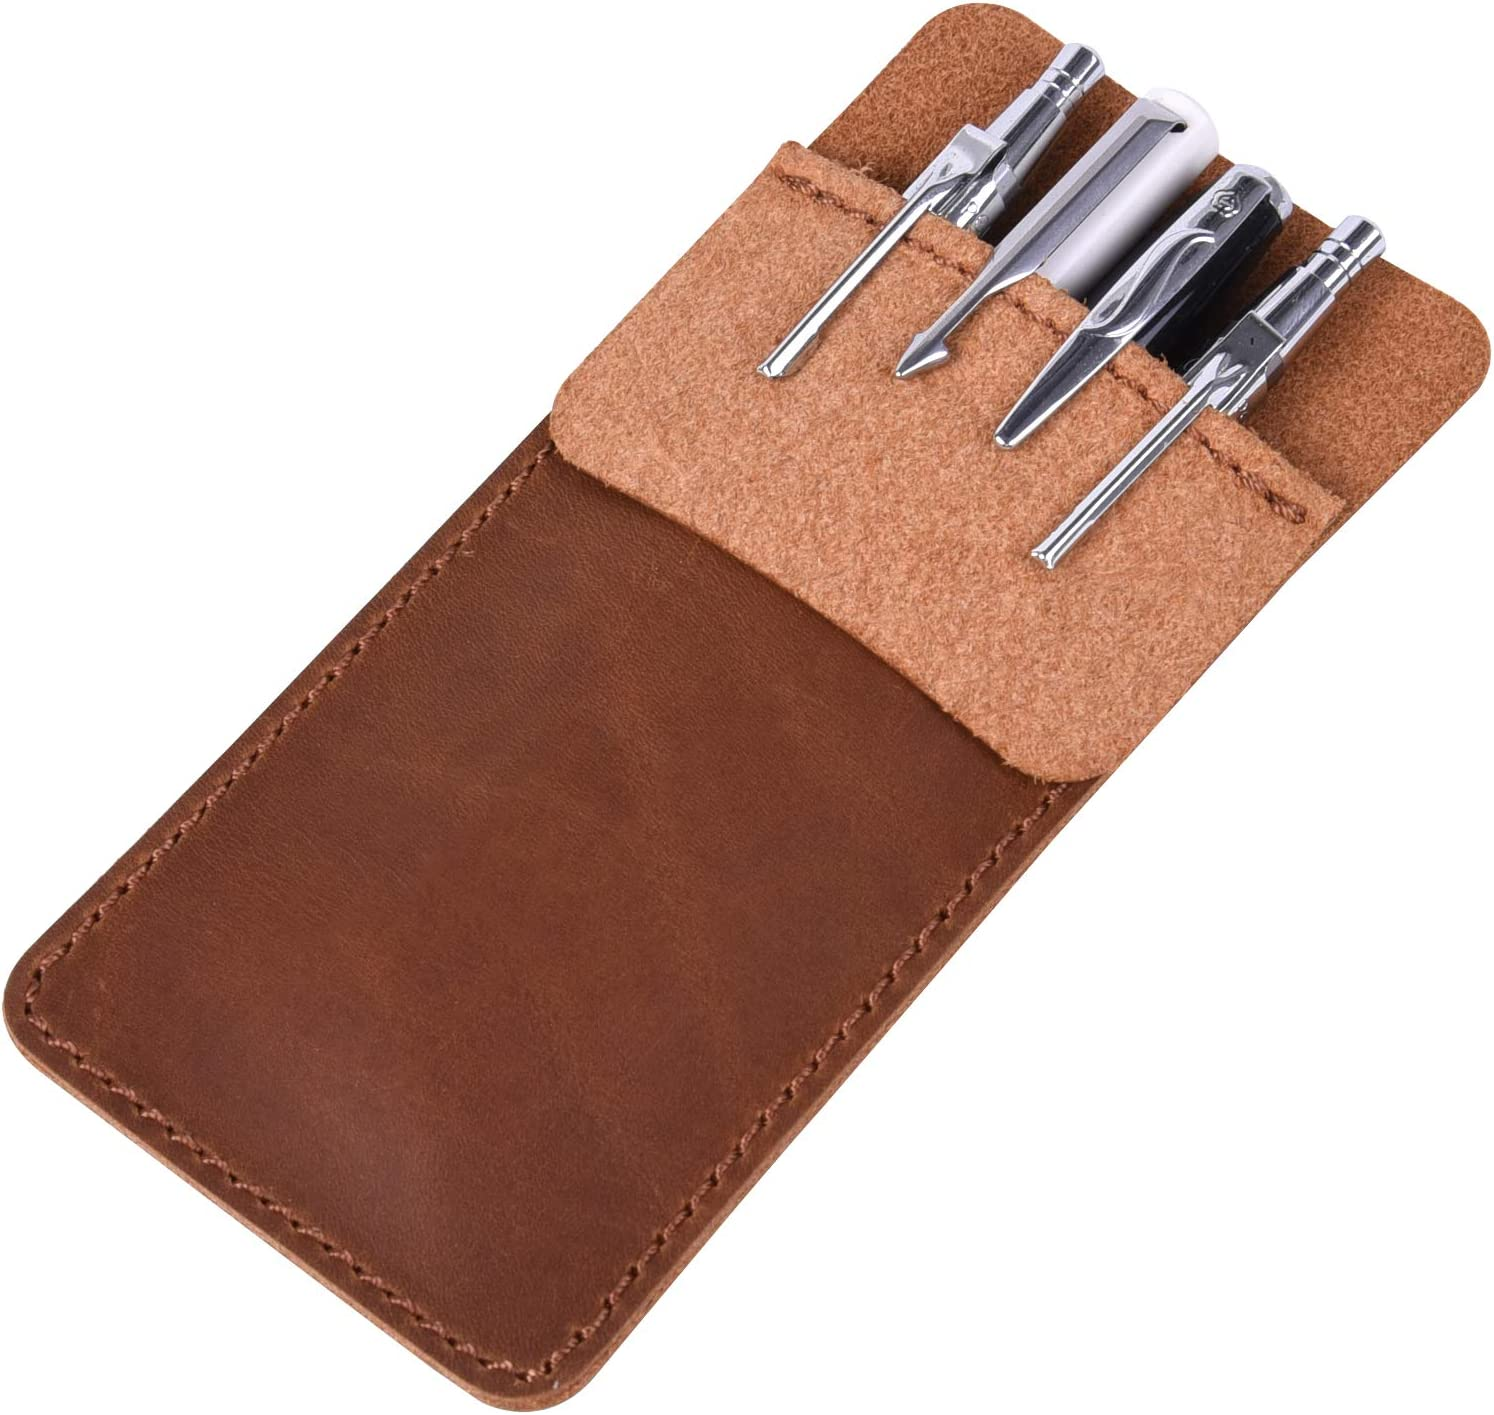 Wisdompro Genuine Leather Heavy Duty Pocket Protector Pen Holder Pouch for Shirts, Lab Coats, Pants - Multi-Purpose; Holds Pens, Pointers, Pencils, and Notes - Vintage Brown